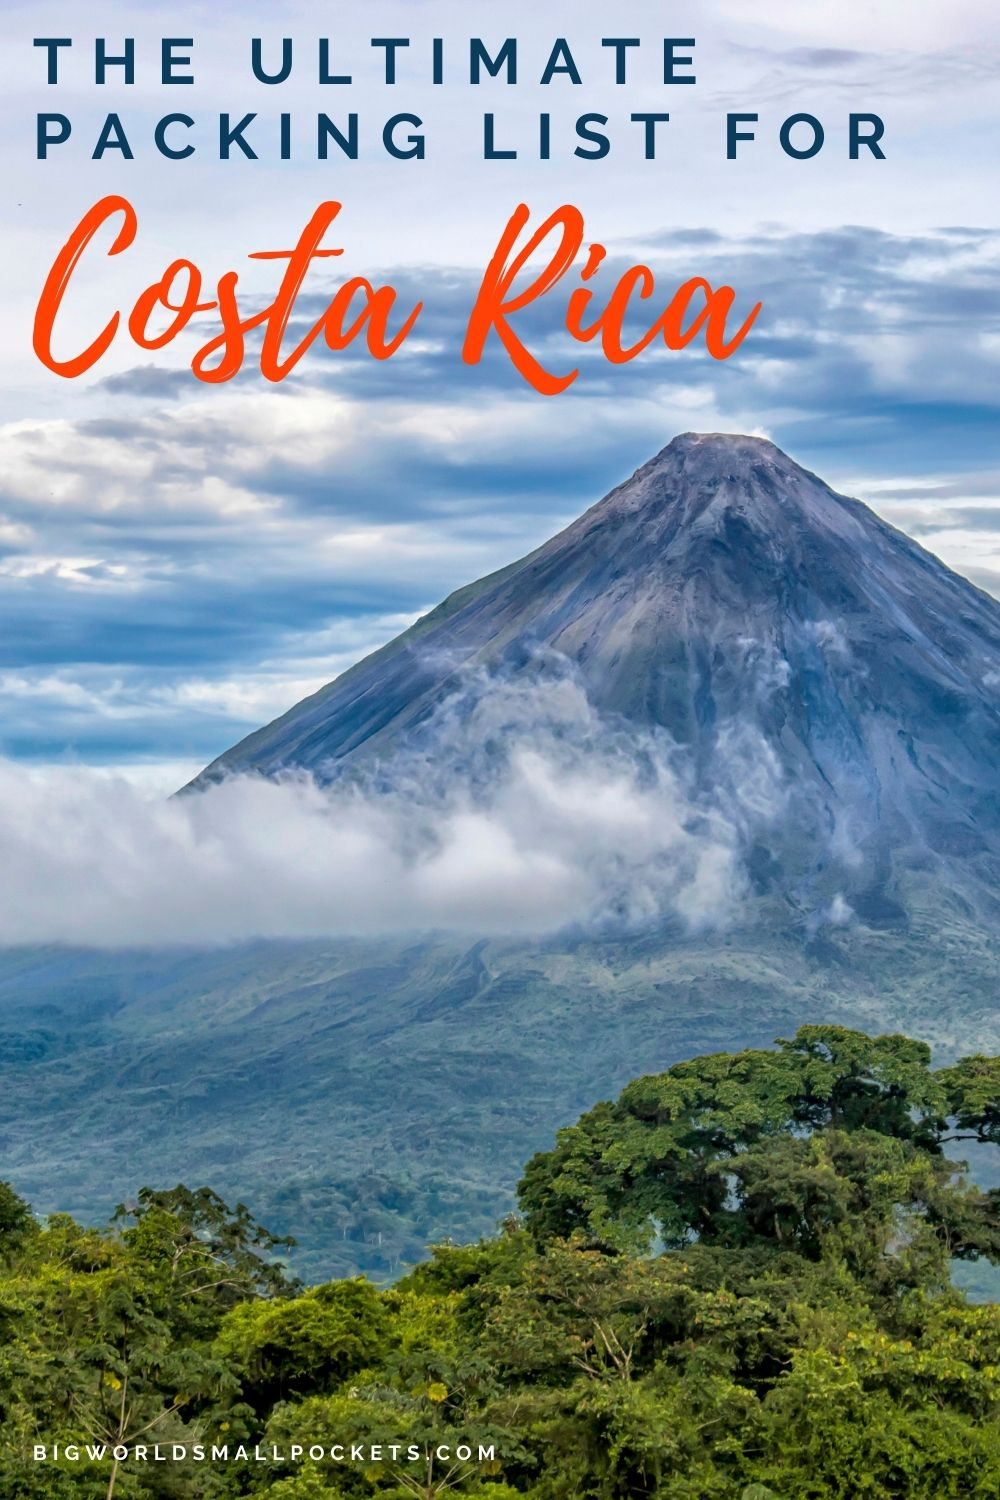 The Complete Costa Rica Packing List